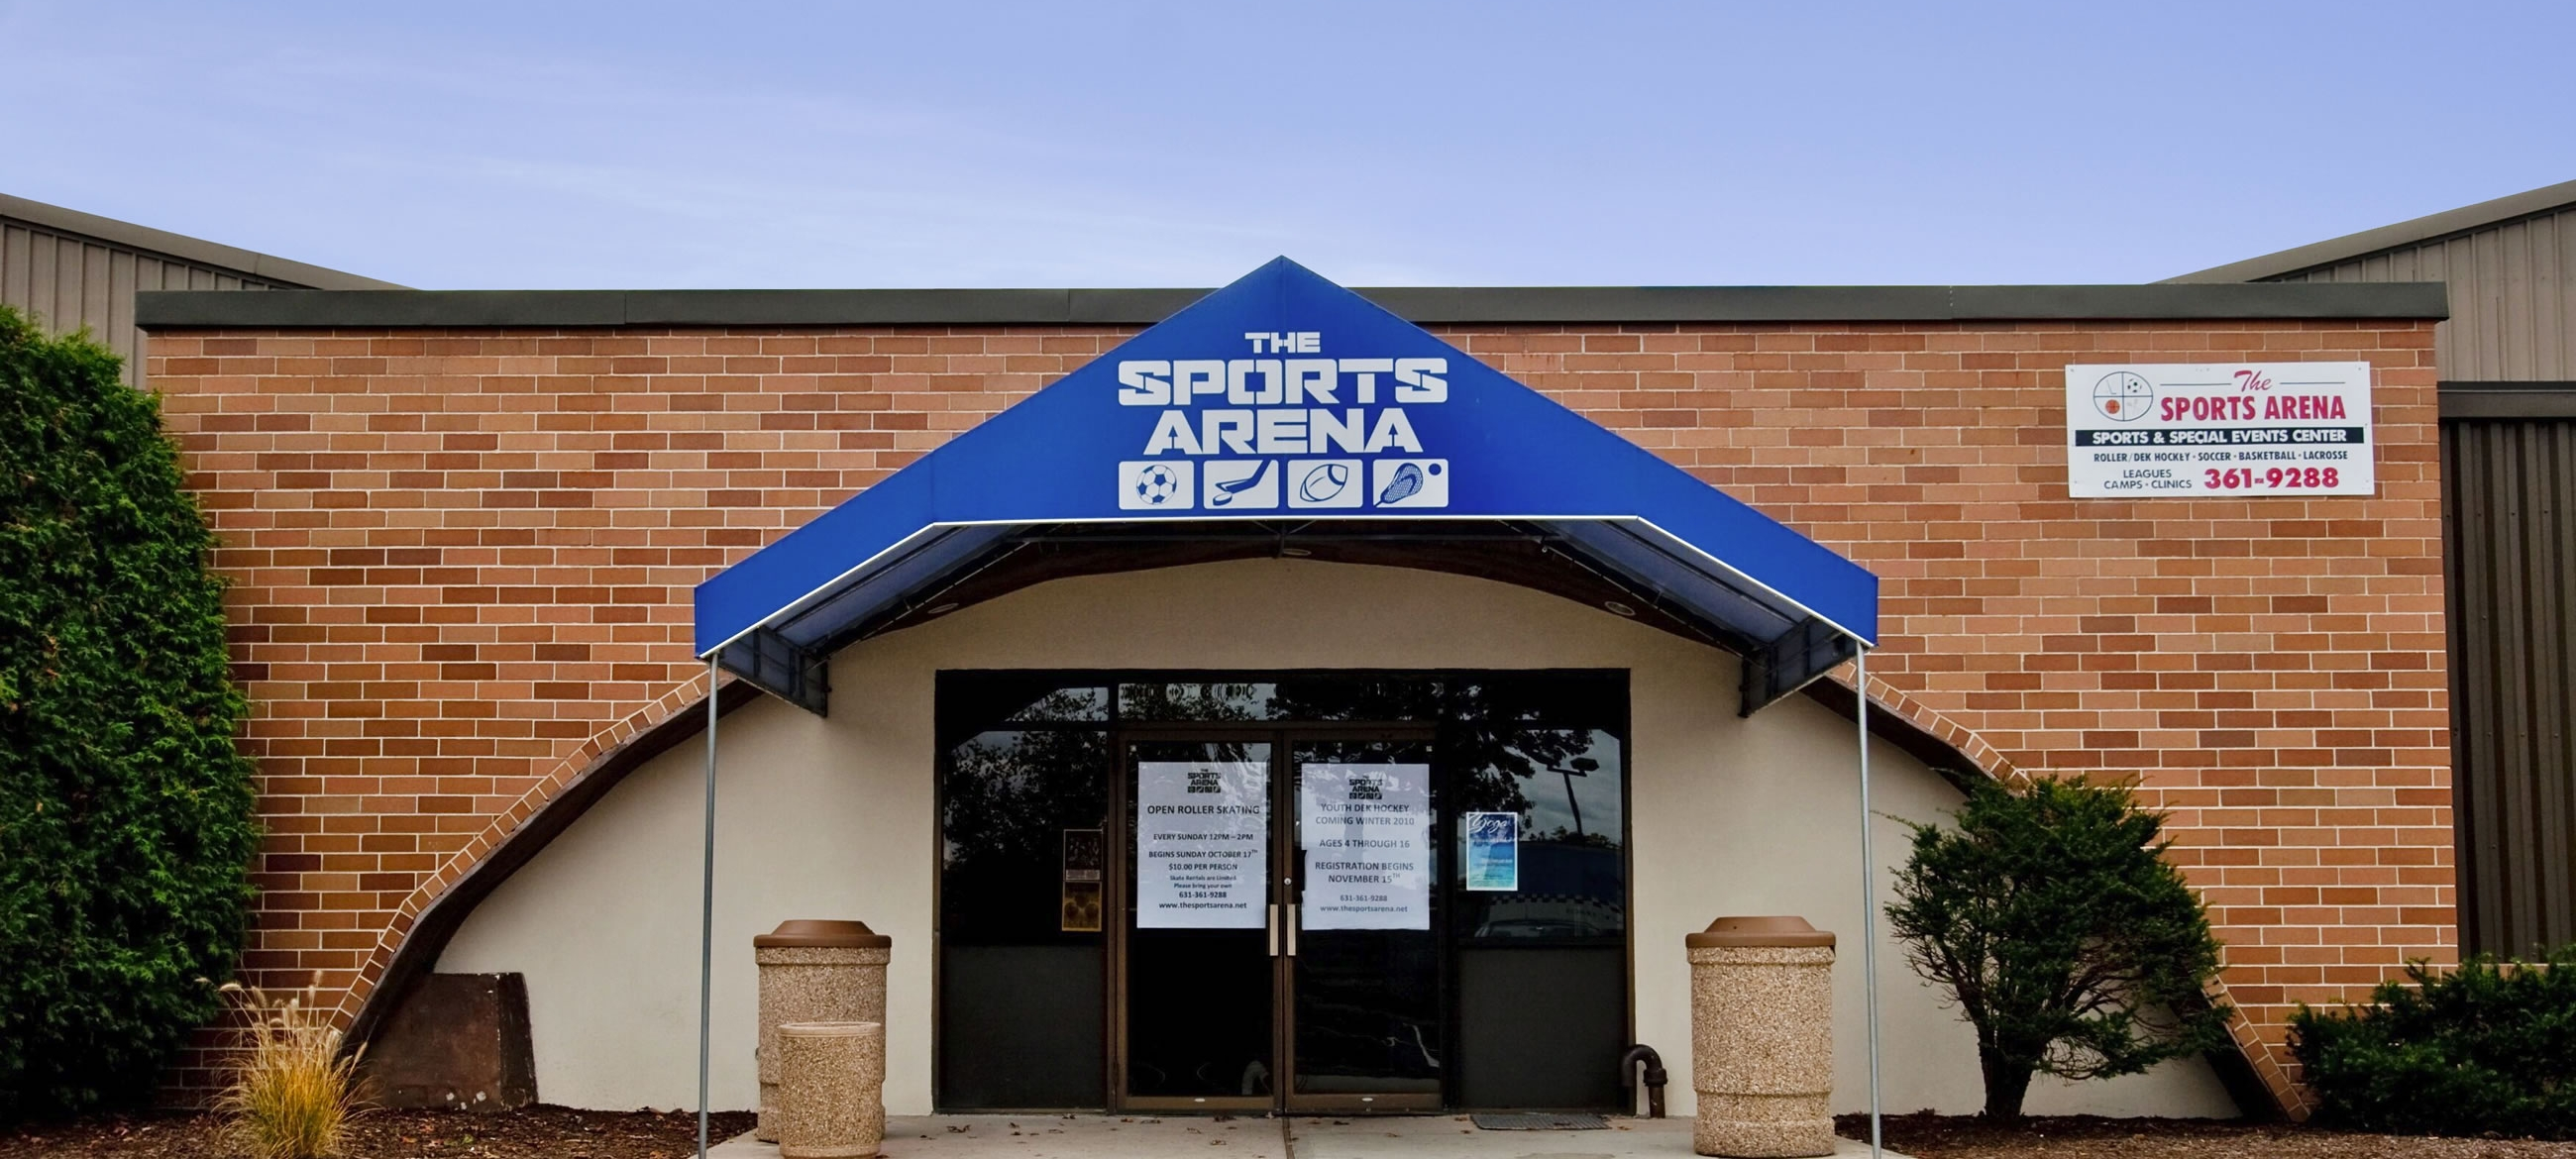 The Sports Arena - Long Island Indoor Sports Complex, St. James, NY